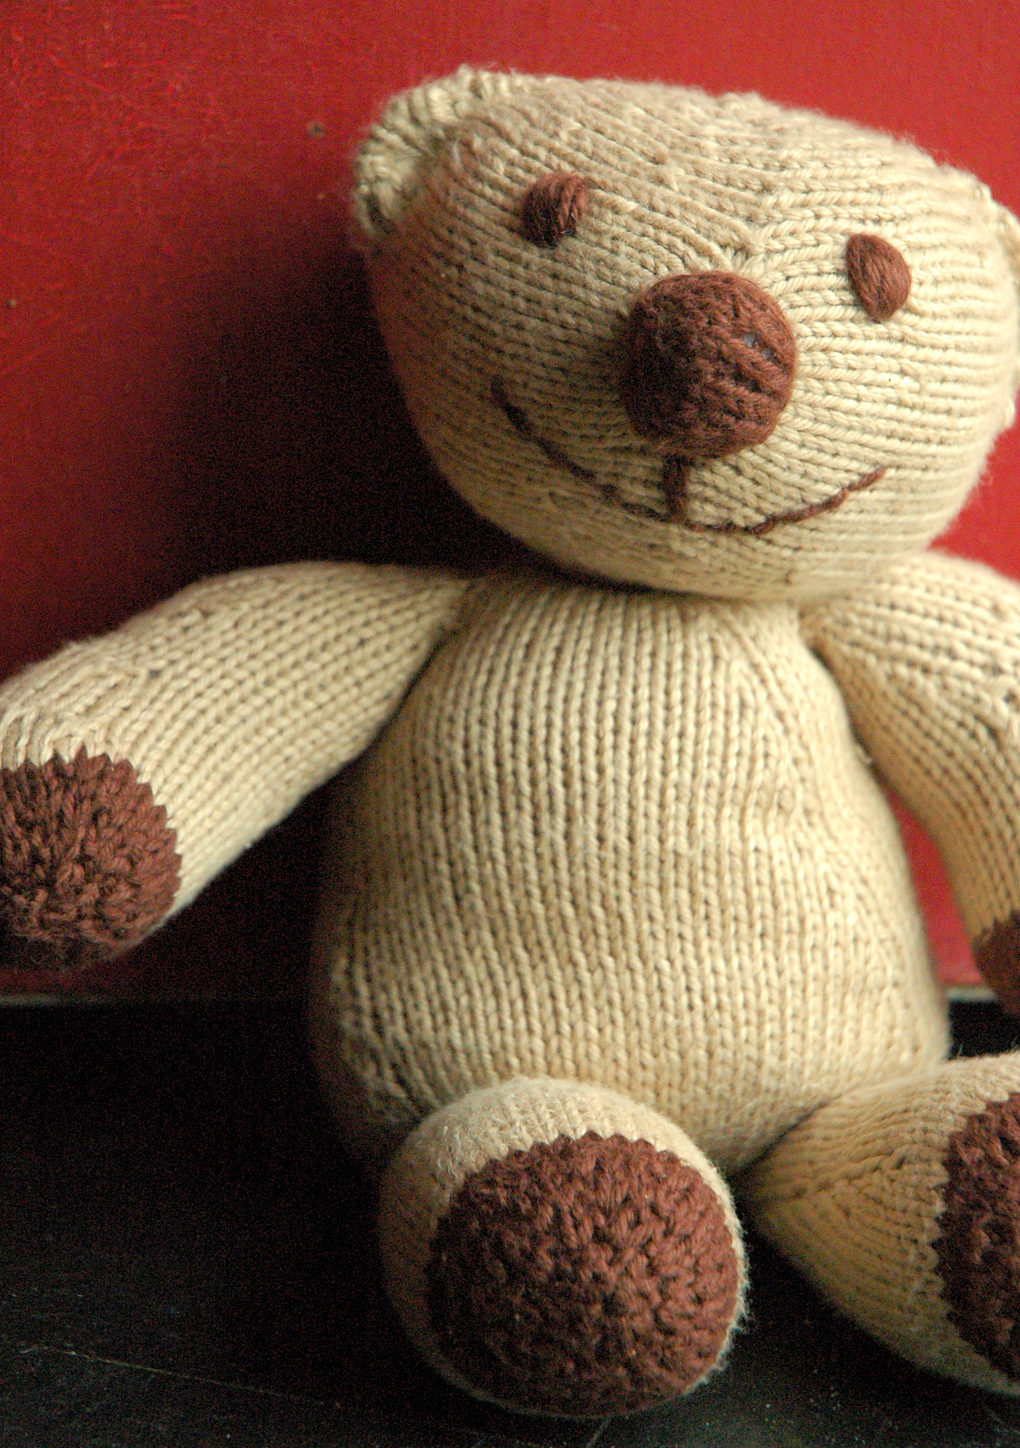 Knitting Patterns For Baby Toys Teddy Bear Knitting Patterns In The Loop Knitting